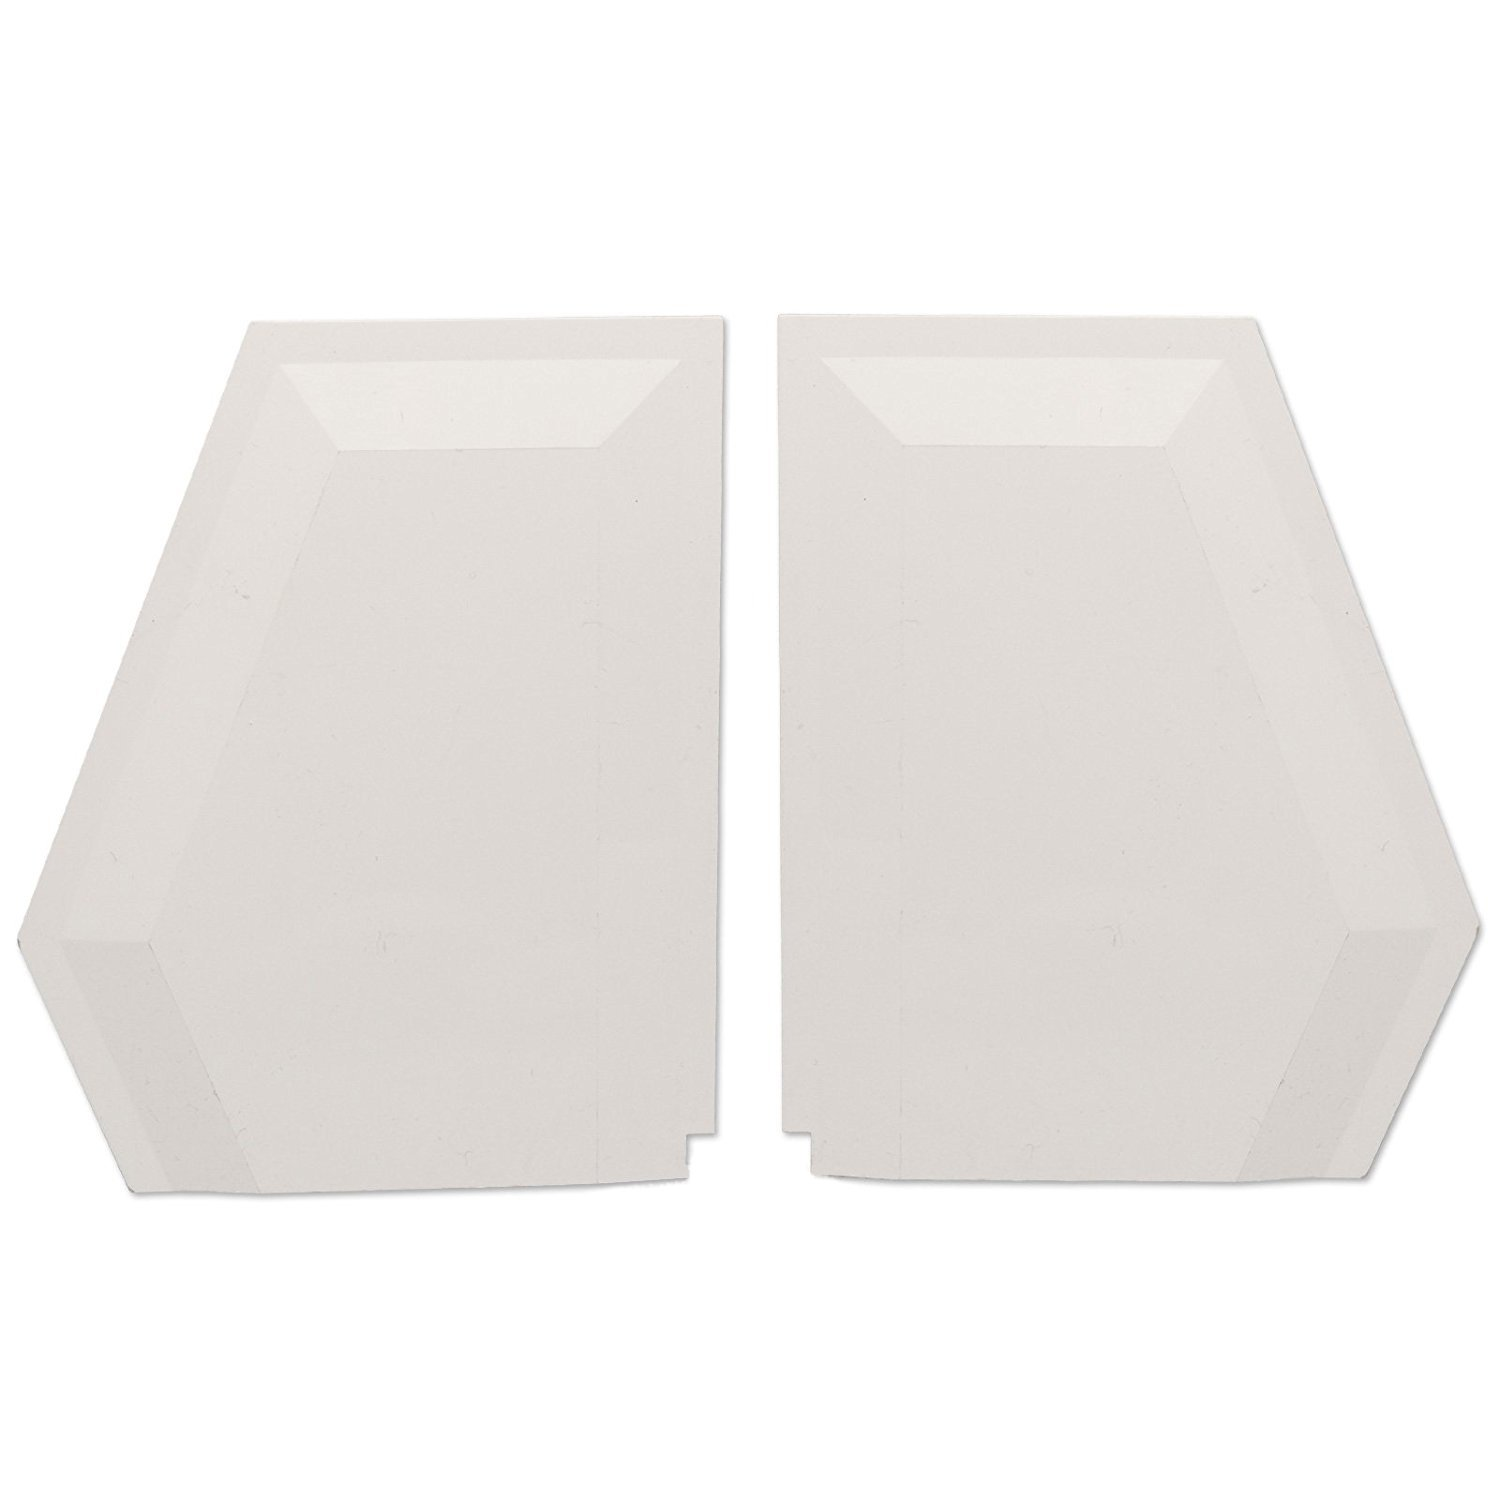 1 Pair of White Wendland Glazing Bar End Cap Left RS3444 & Right RS3445 for Wendland Conservatory Roof Spar/Glazing Bars - Various Colours and Options Available